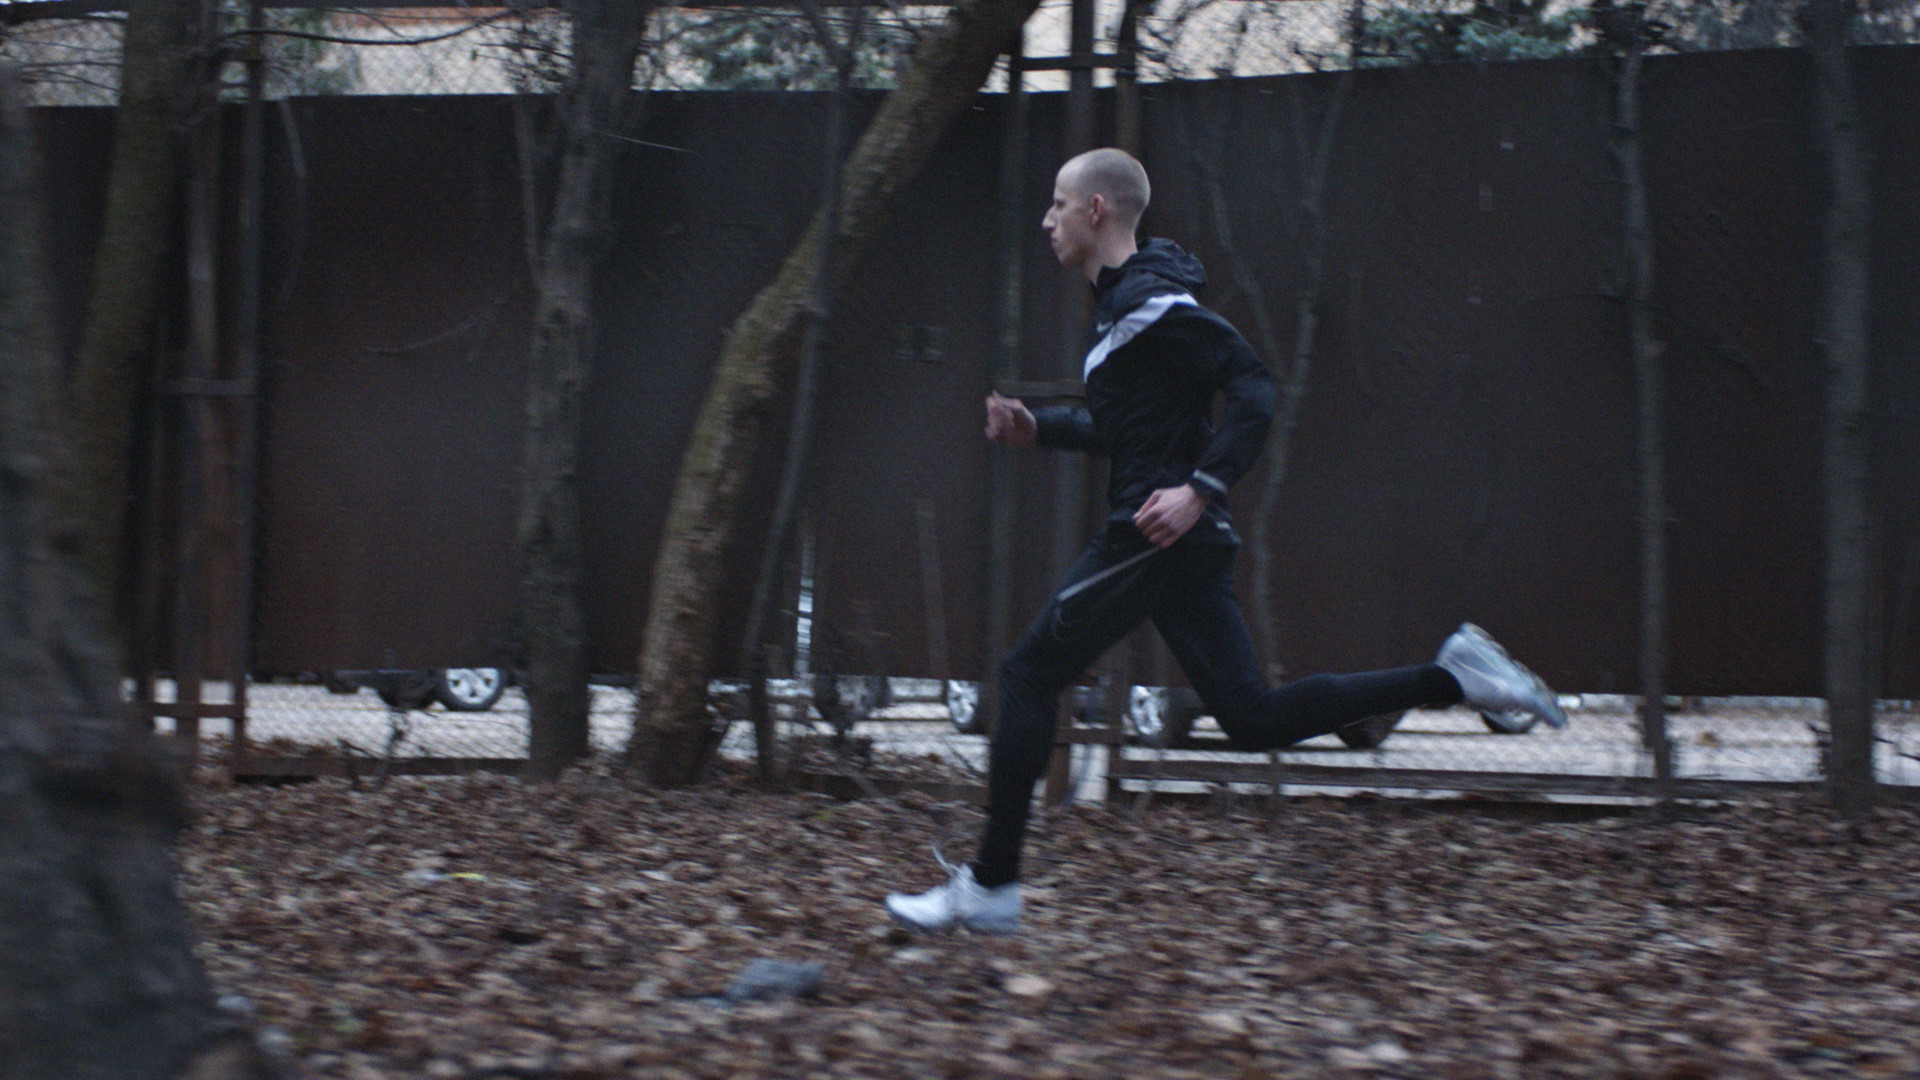 Nike - Everything Starts With A Run __ Sever-0622